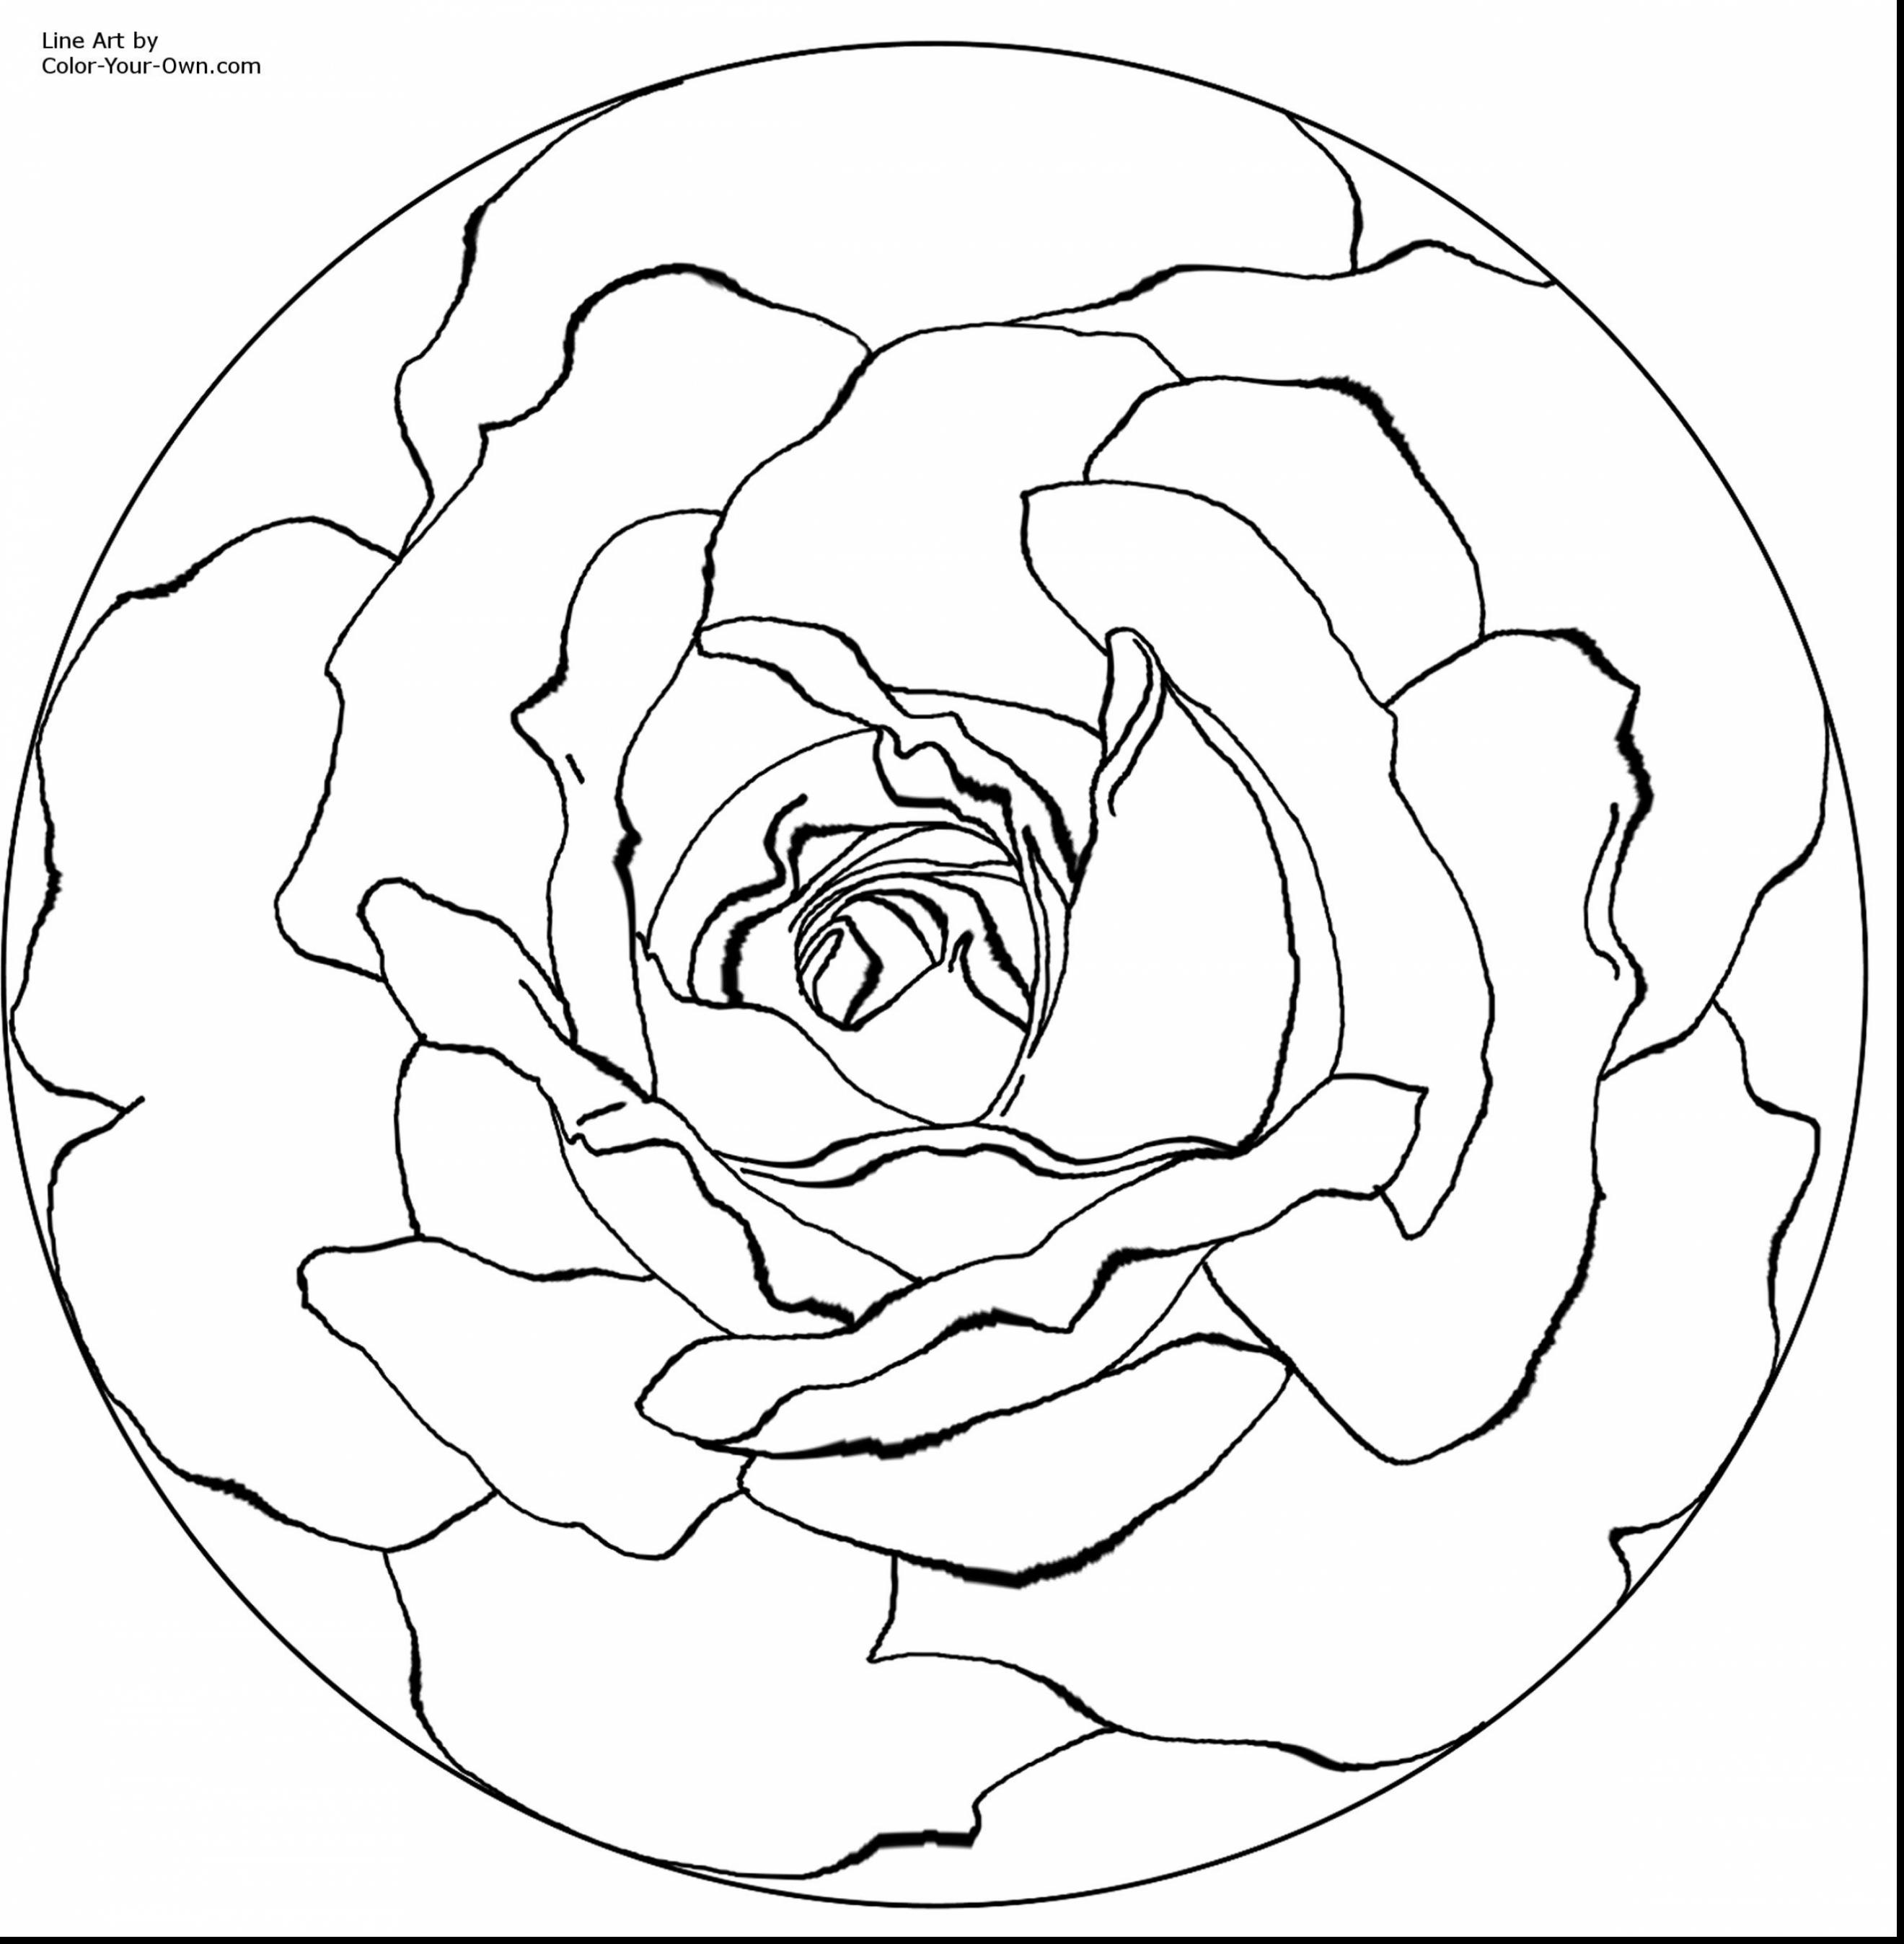 Red Roses Drawing at GetDrawings.com | Free for personal use Red ...